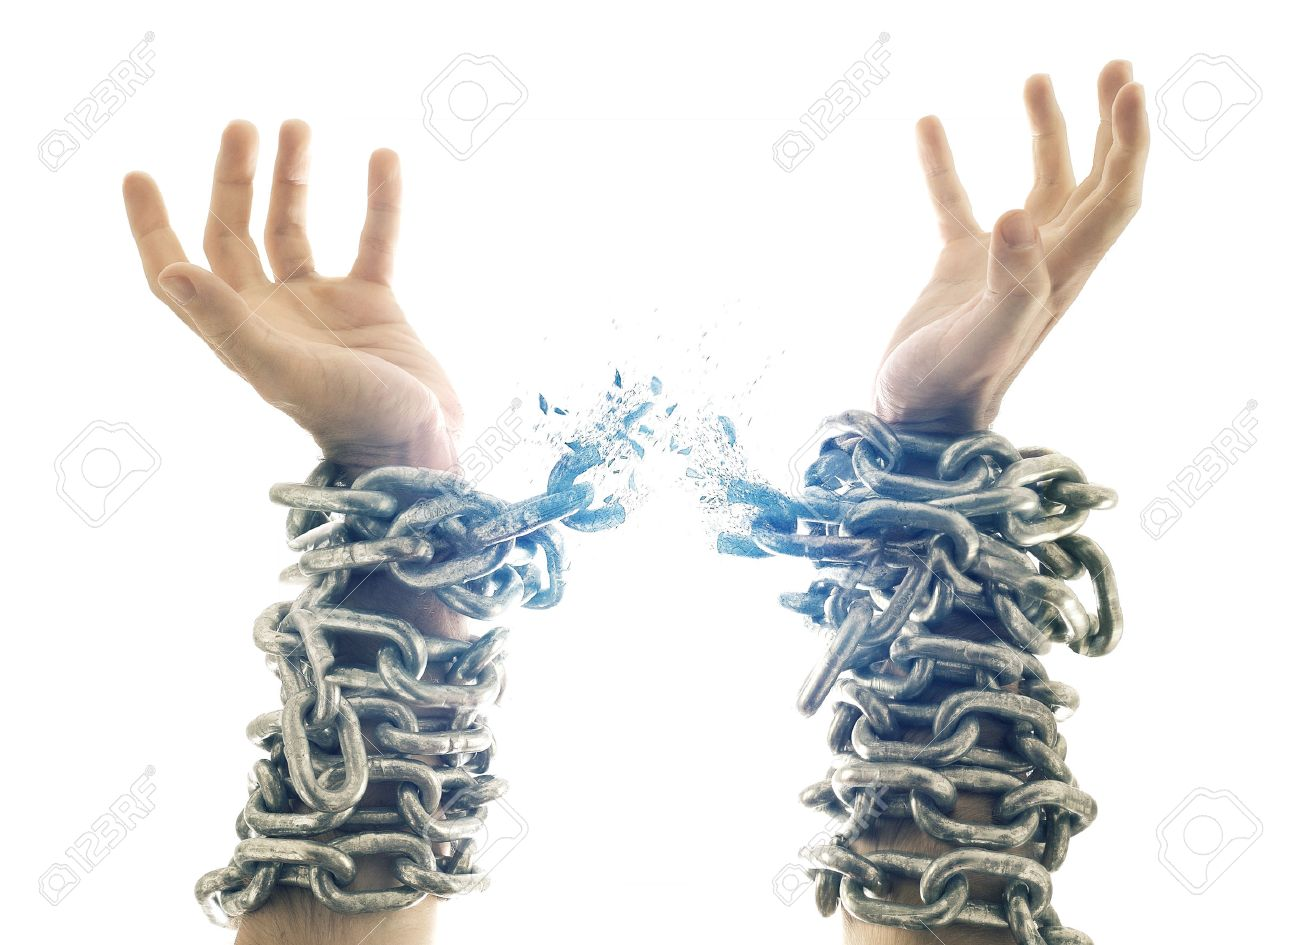 Image result for in chains